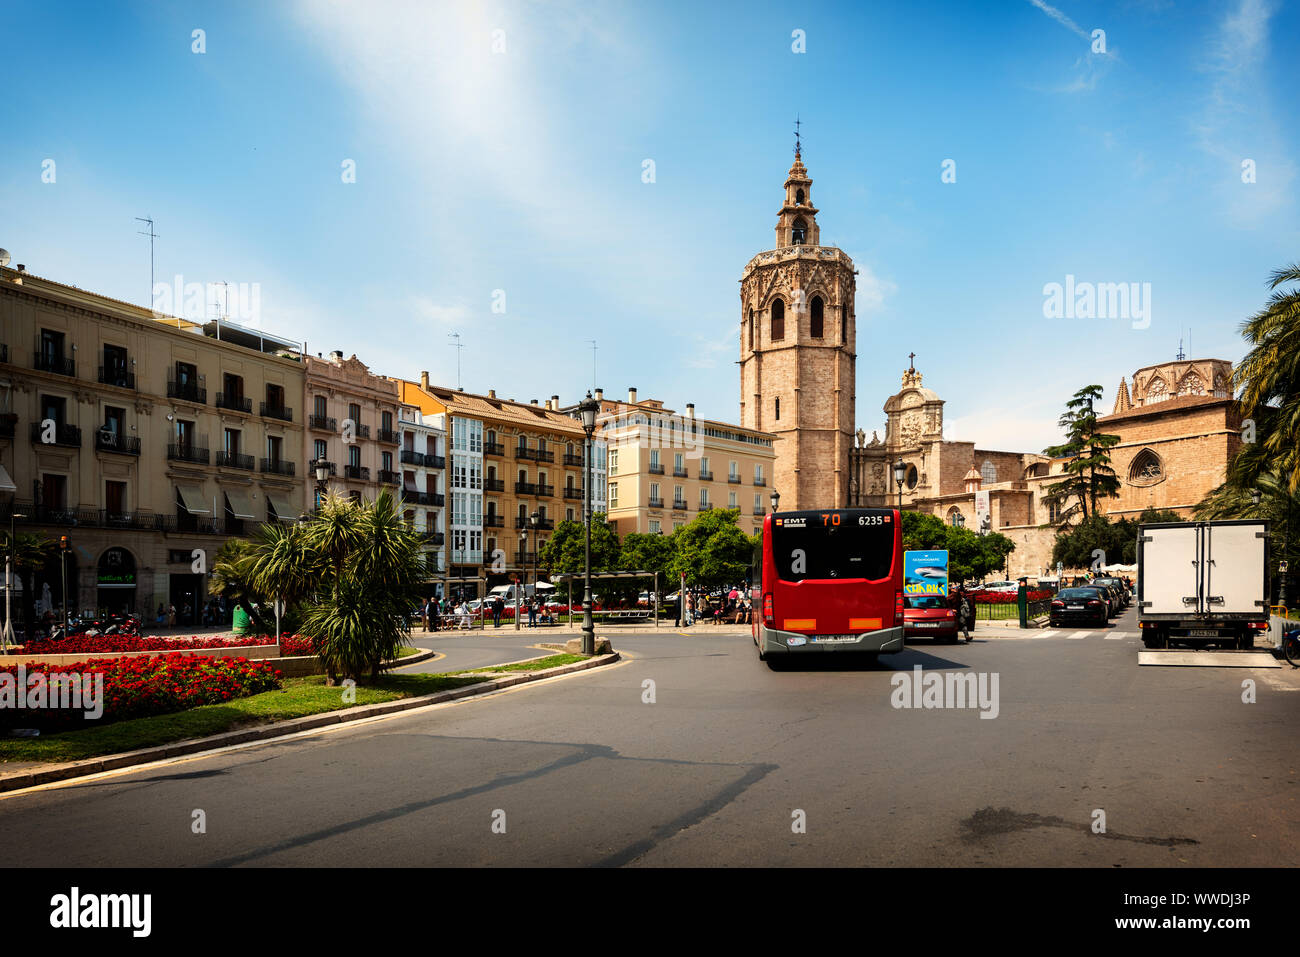 Valencia, Spain - May 07th 2019: A beautiful view of Torre del Micalet, also known as El Miguelete, the bell tower of Valencia Cathedral, in the histo Stock Photo